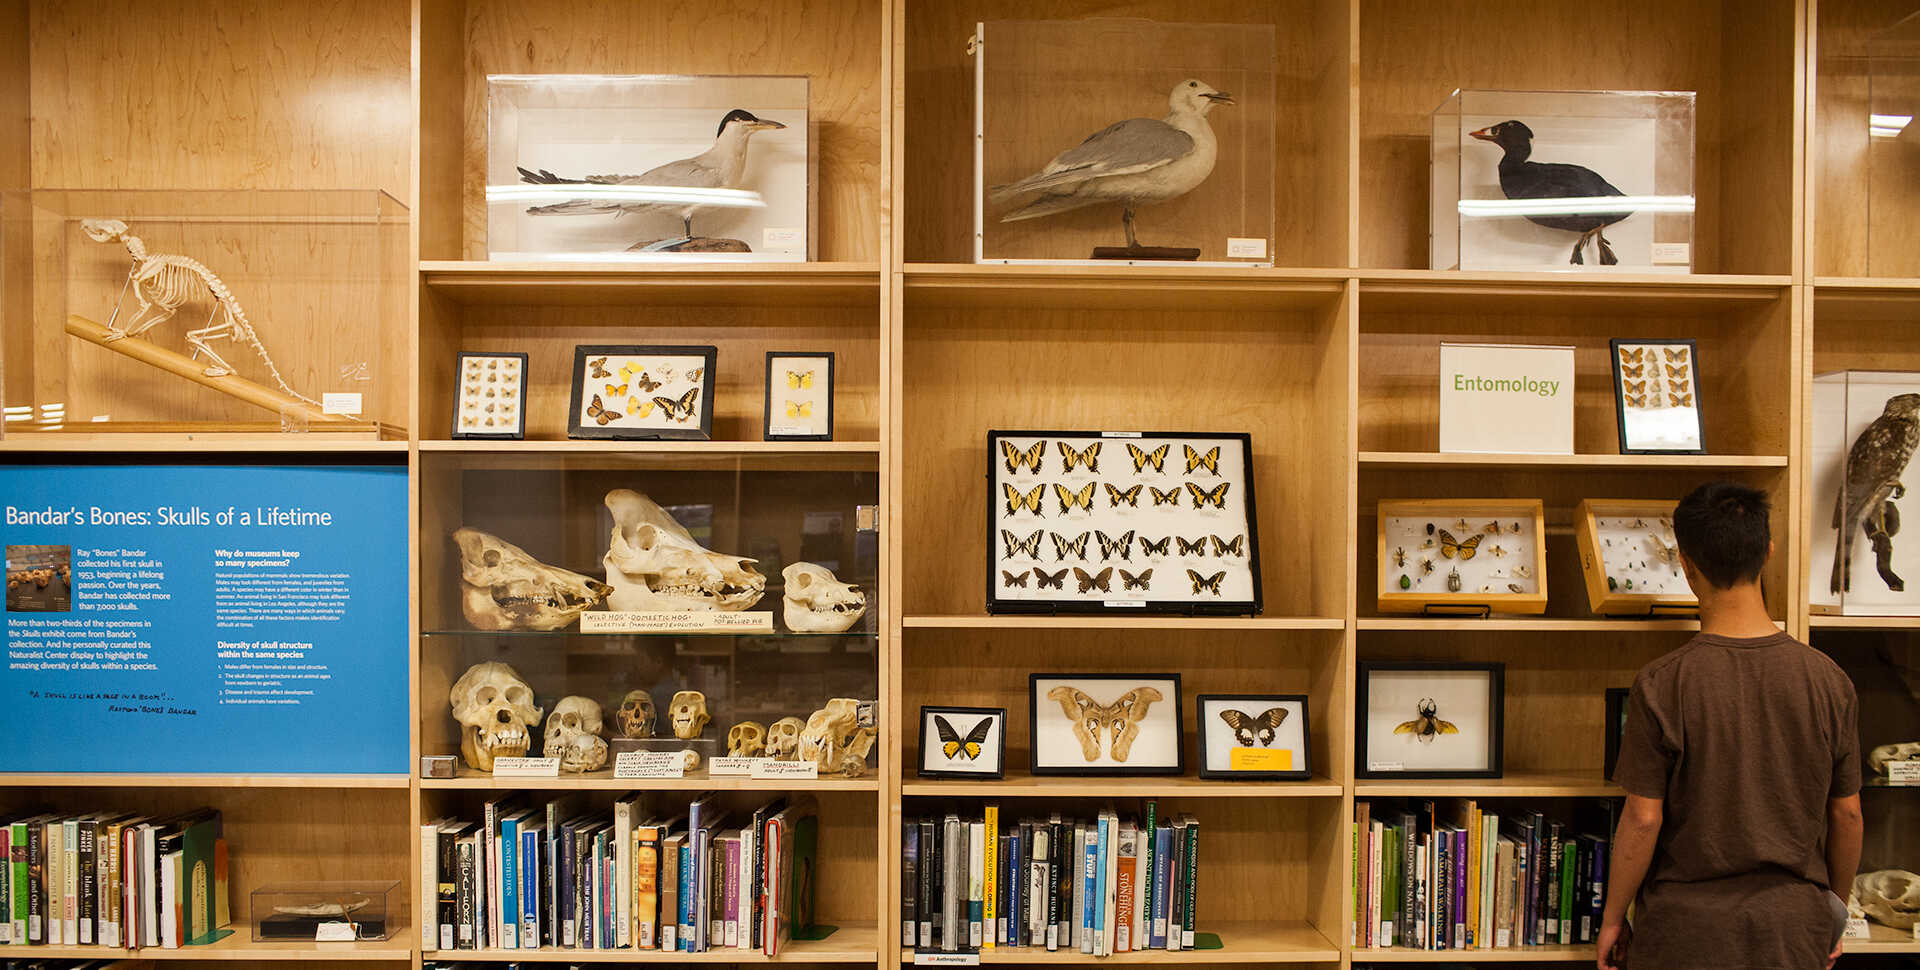 A visitor inspecting the Naturalist Center cabinets filled with specimens, books, and more.